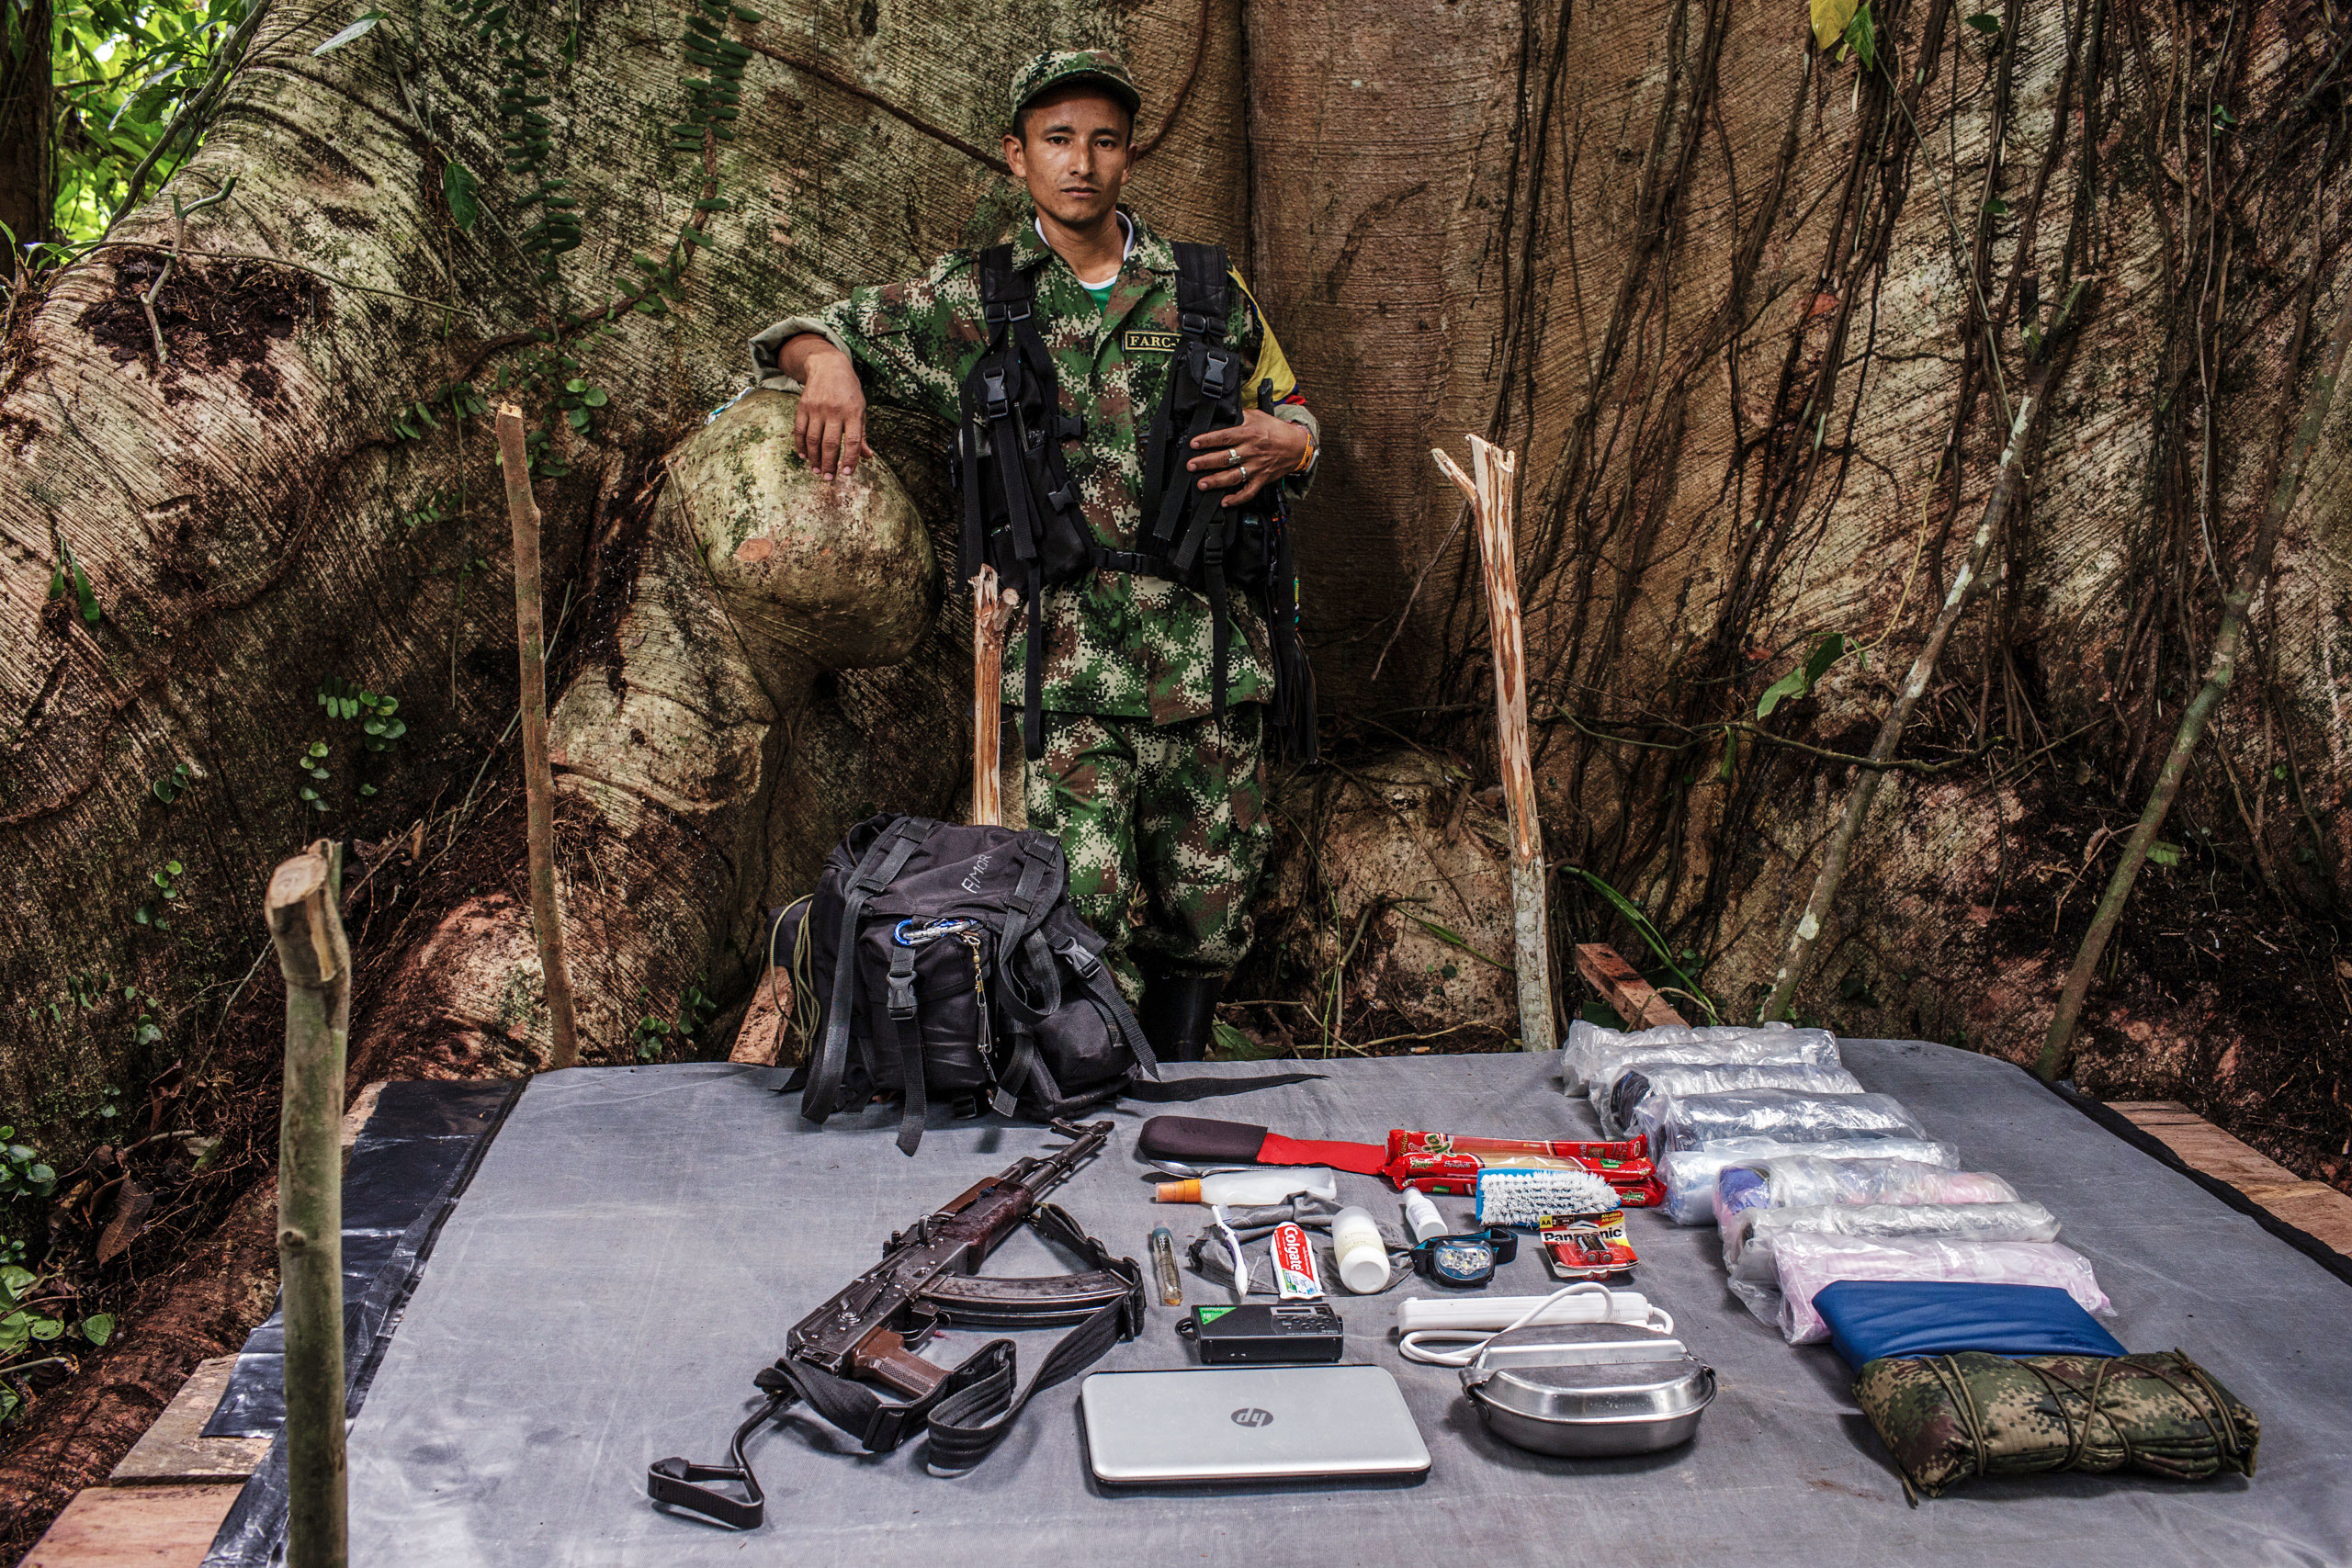 Didier, 37 years old, has been with FARC for 19 years.                                He carries an AK47 and  a laptop  for intelligence missions.